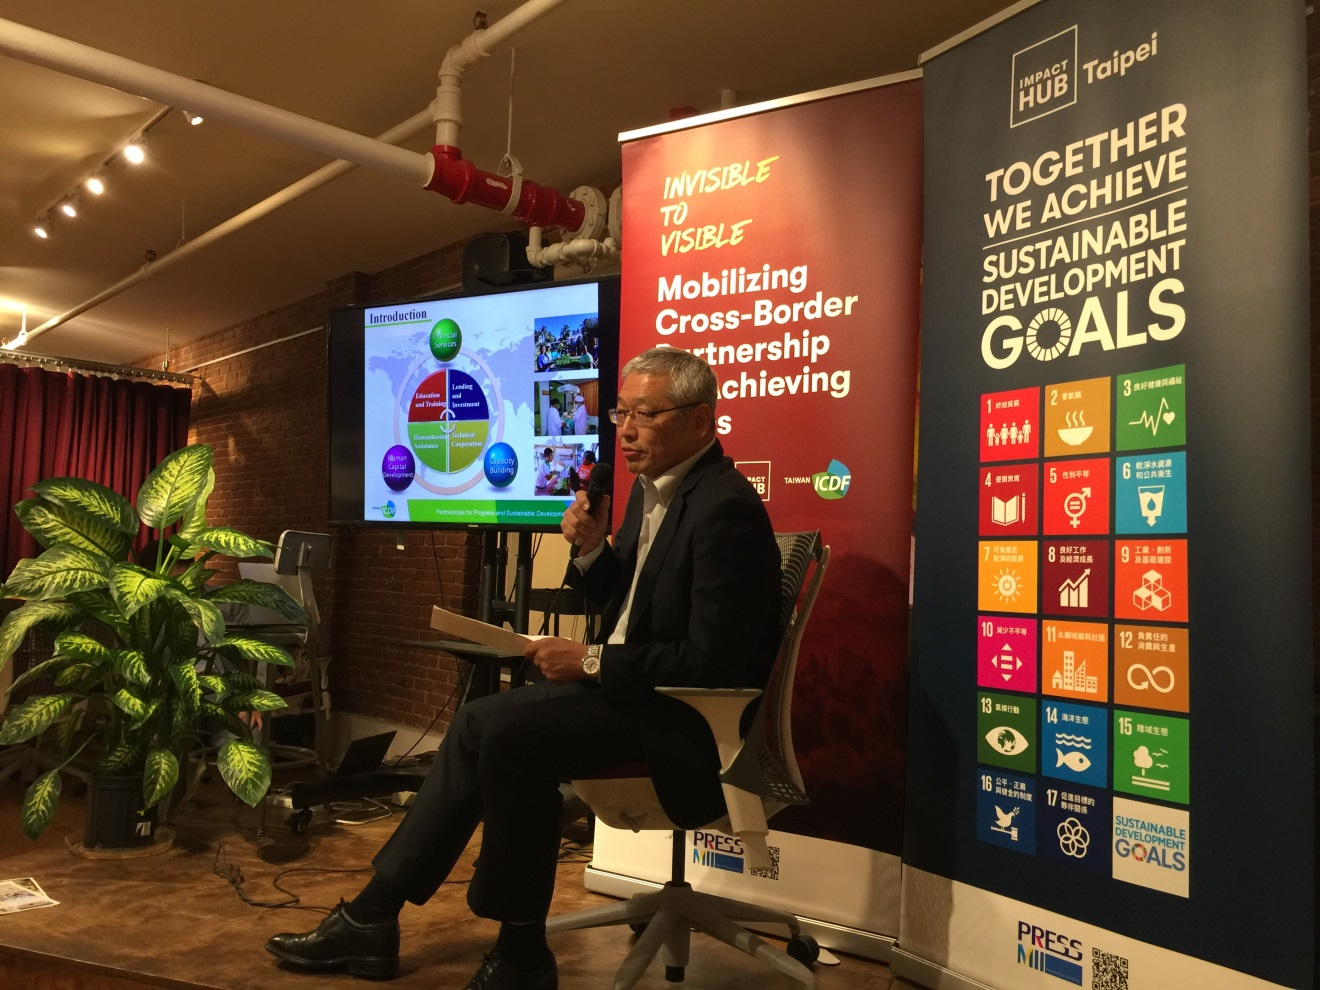 TaiwanICDF on 'How to start small with business and innovation' for Sustainable Development at Impact Hub NYC